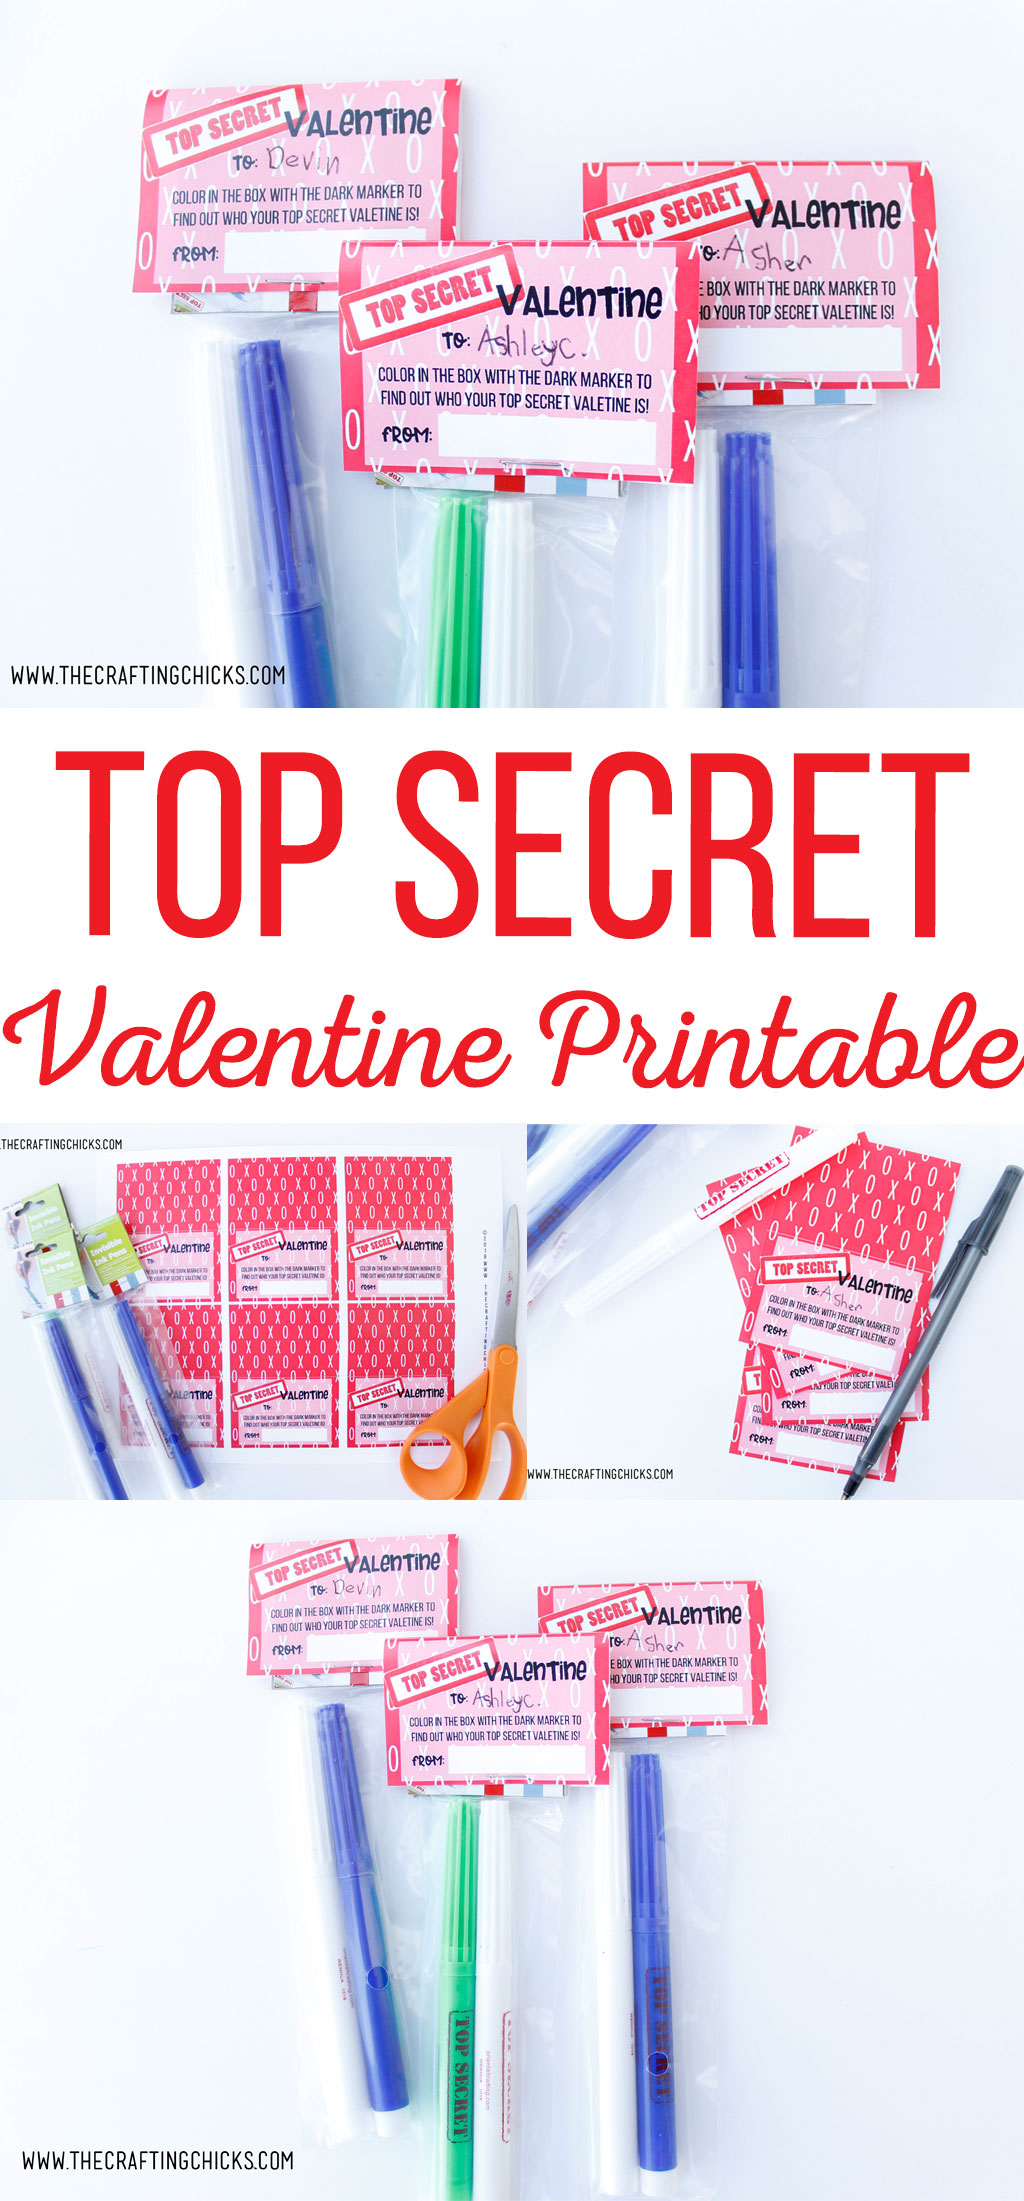 This Top Secret Valentine Printable is sure to be a hit with kids of all ages. They will love the mystery of finding out who this valentine is from by using the special markers inside. A great idea for boys and girls.